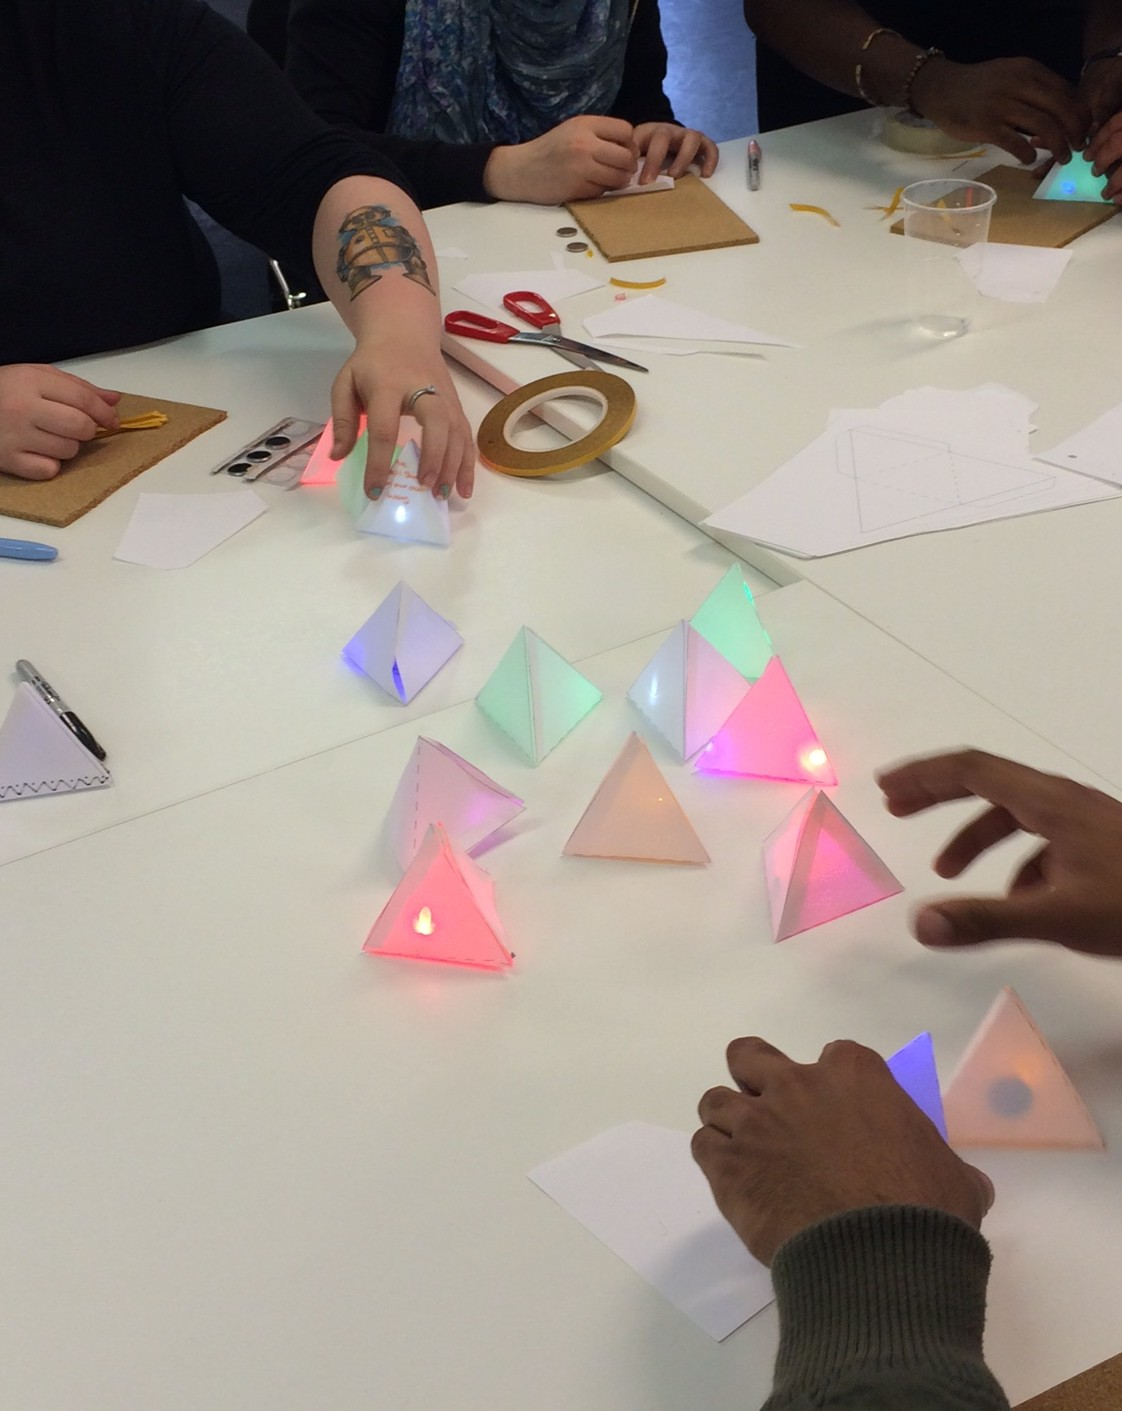 The group are placing their colourful light up paper pyramids in the centre of the table.